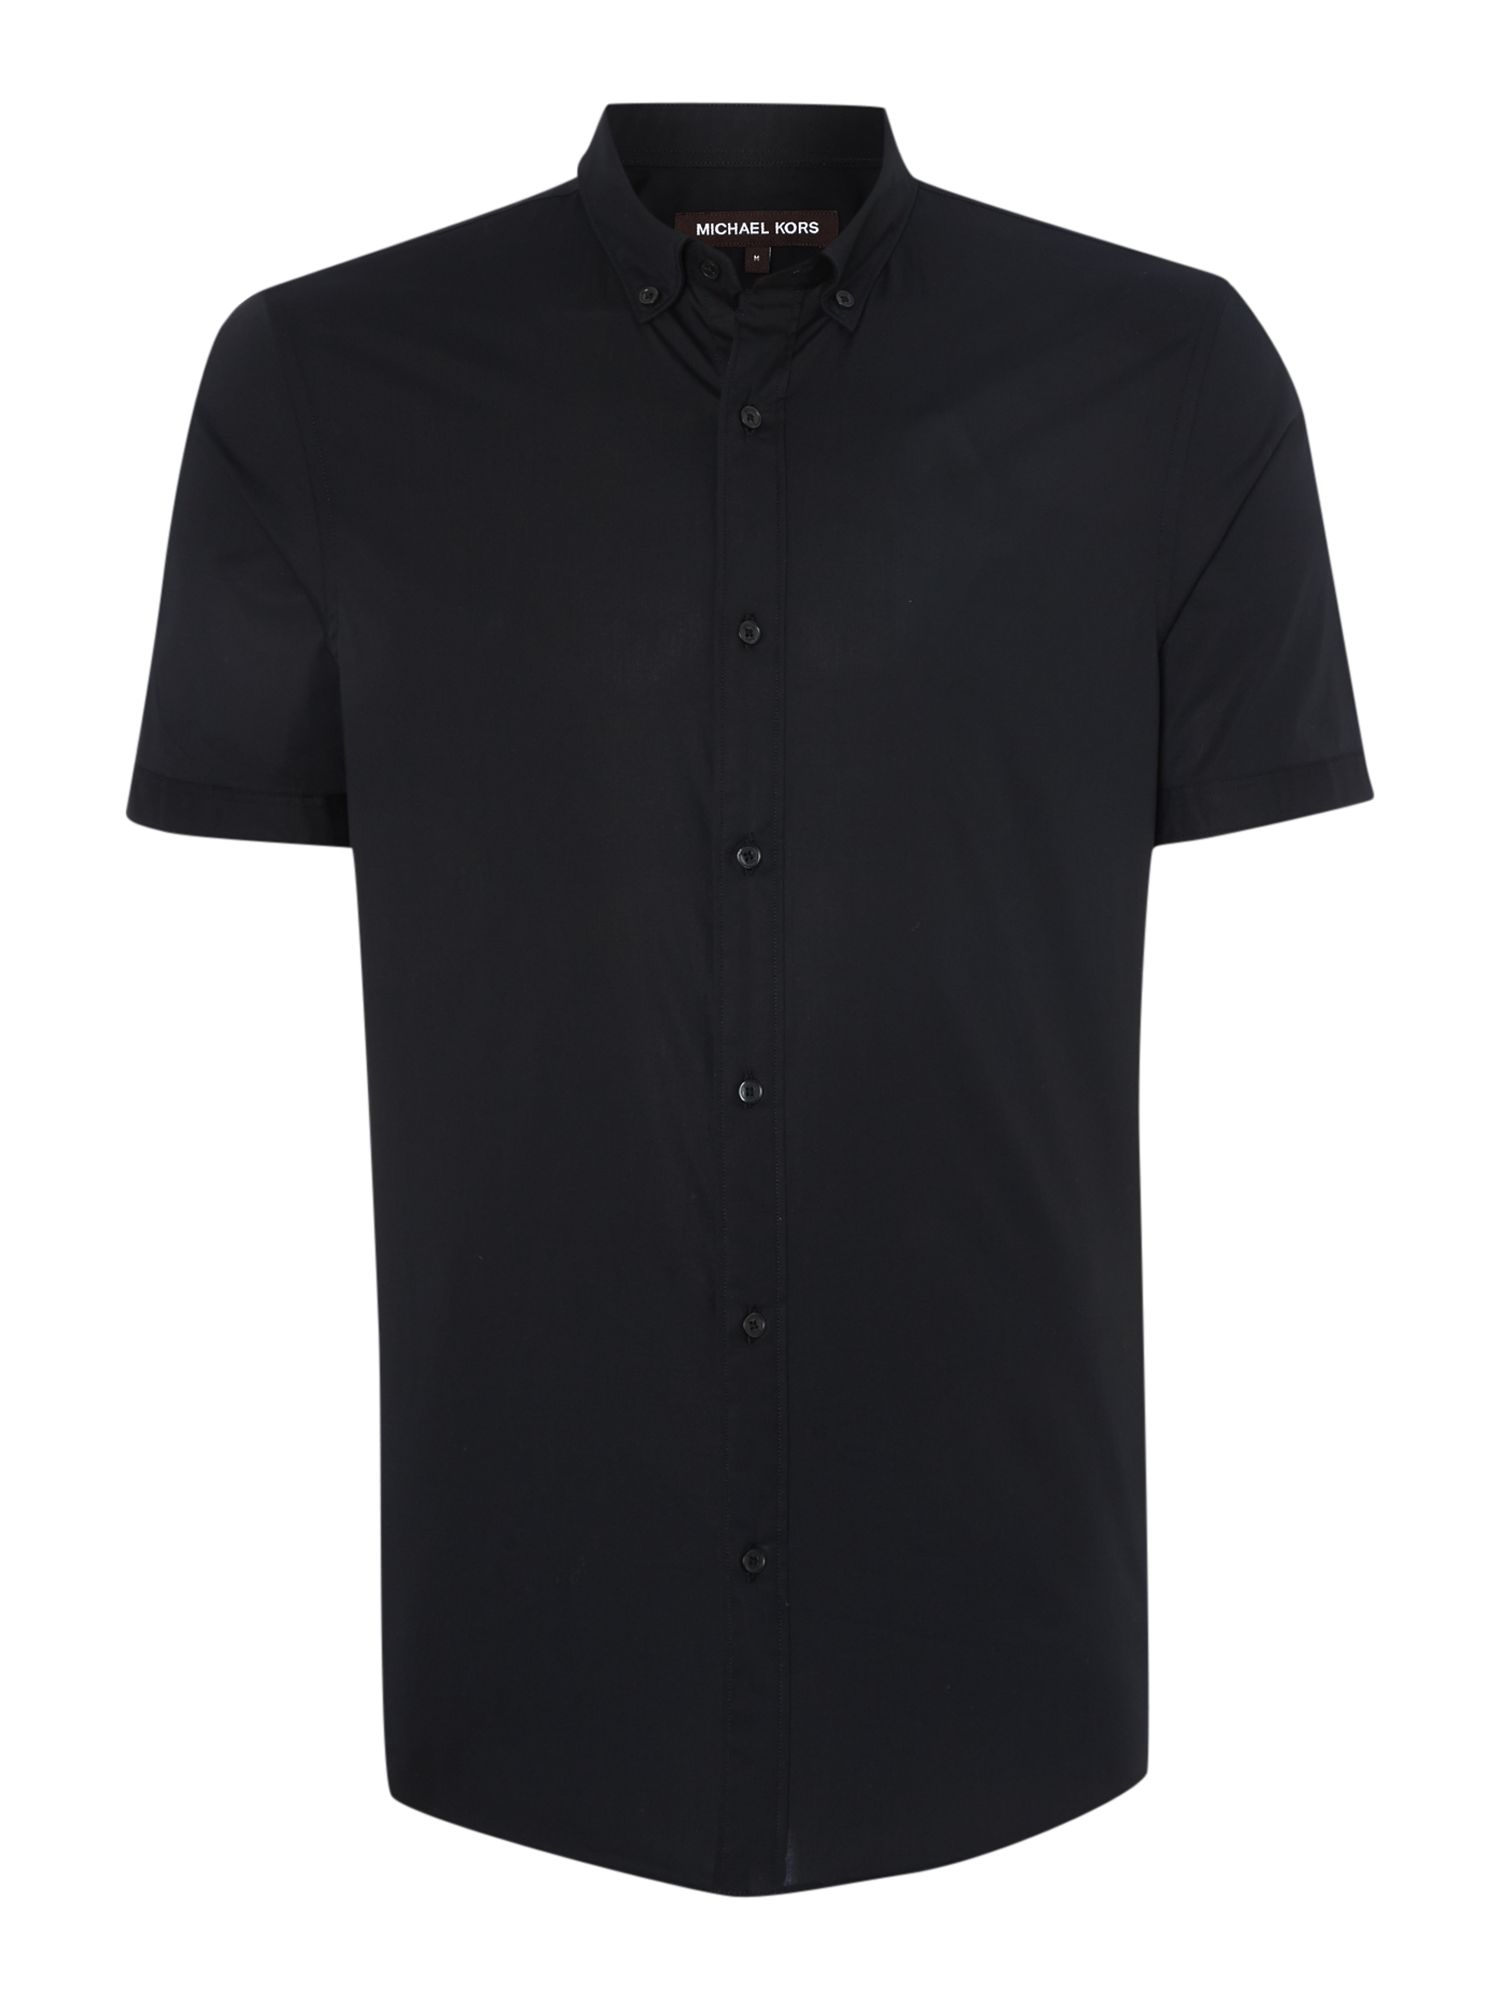 Little Black Dresses Start layering with a casual short sleeve or flannel over a graphic tee for the weekend or try a classic button down for work. Try all our fit options today. Layer a short sleeve button up shirt on top of a plain tee with shorts or chinos. And don't be afraid to pick a bold print or pattern like floral and button it.